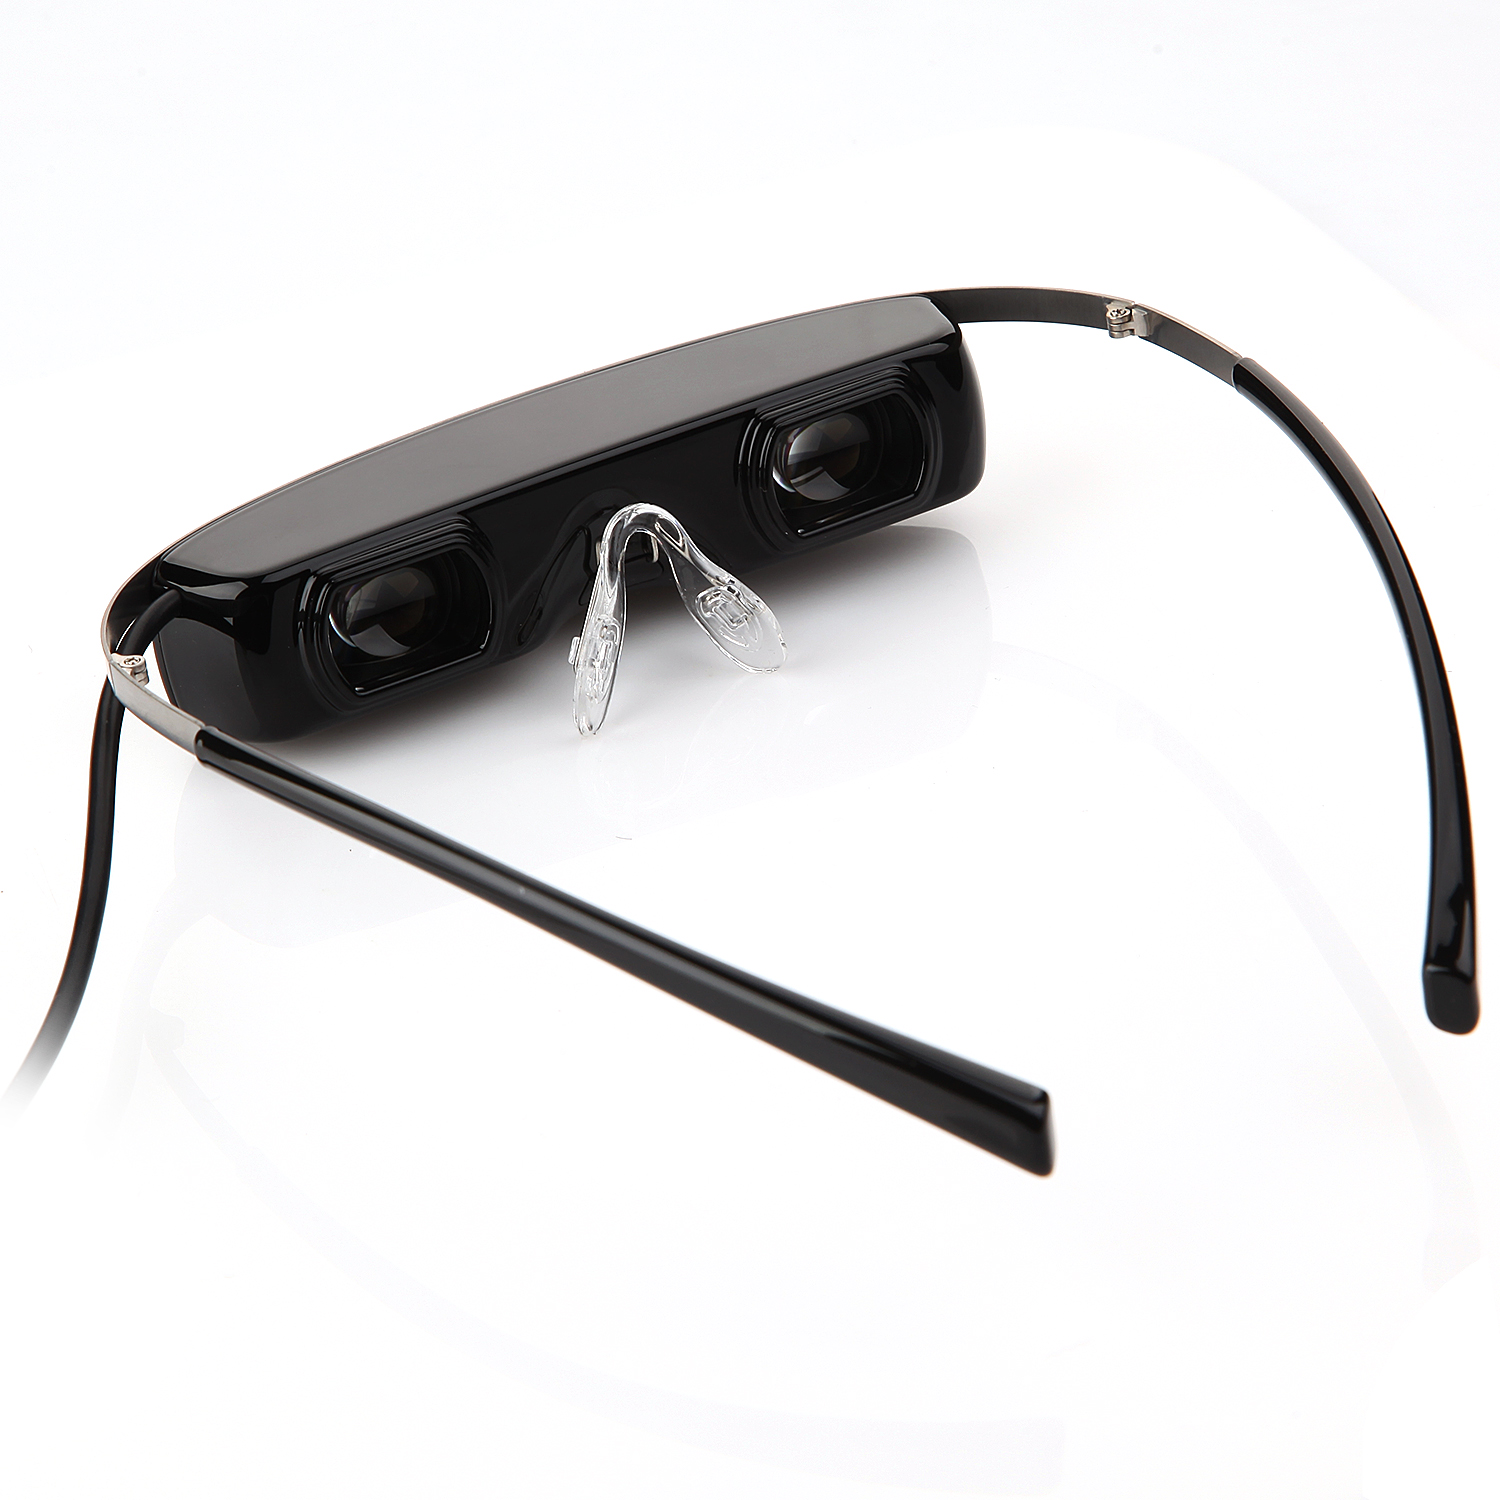 "42"" Virtual Screen Personal 2D/3D Viewer Video Glasses Cinema Theater 16:9 with AV-In"